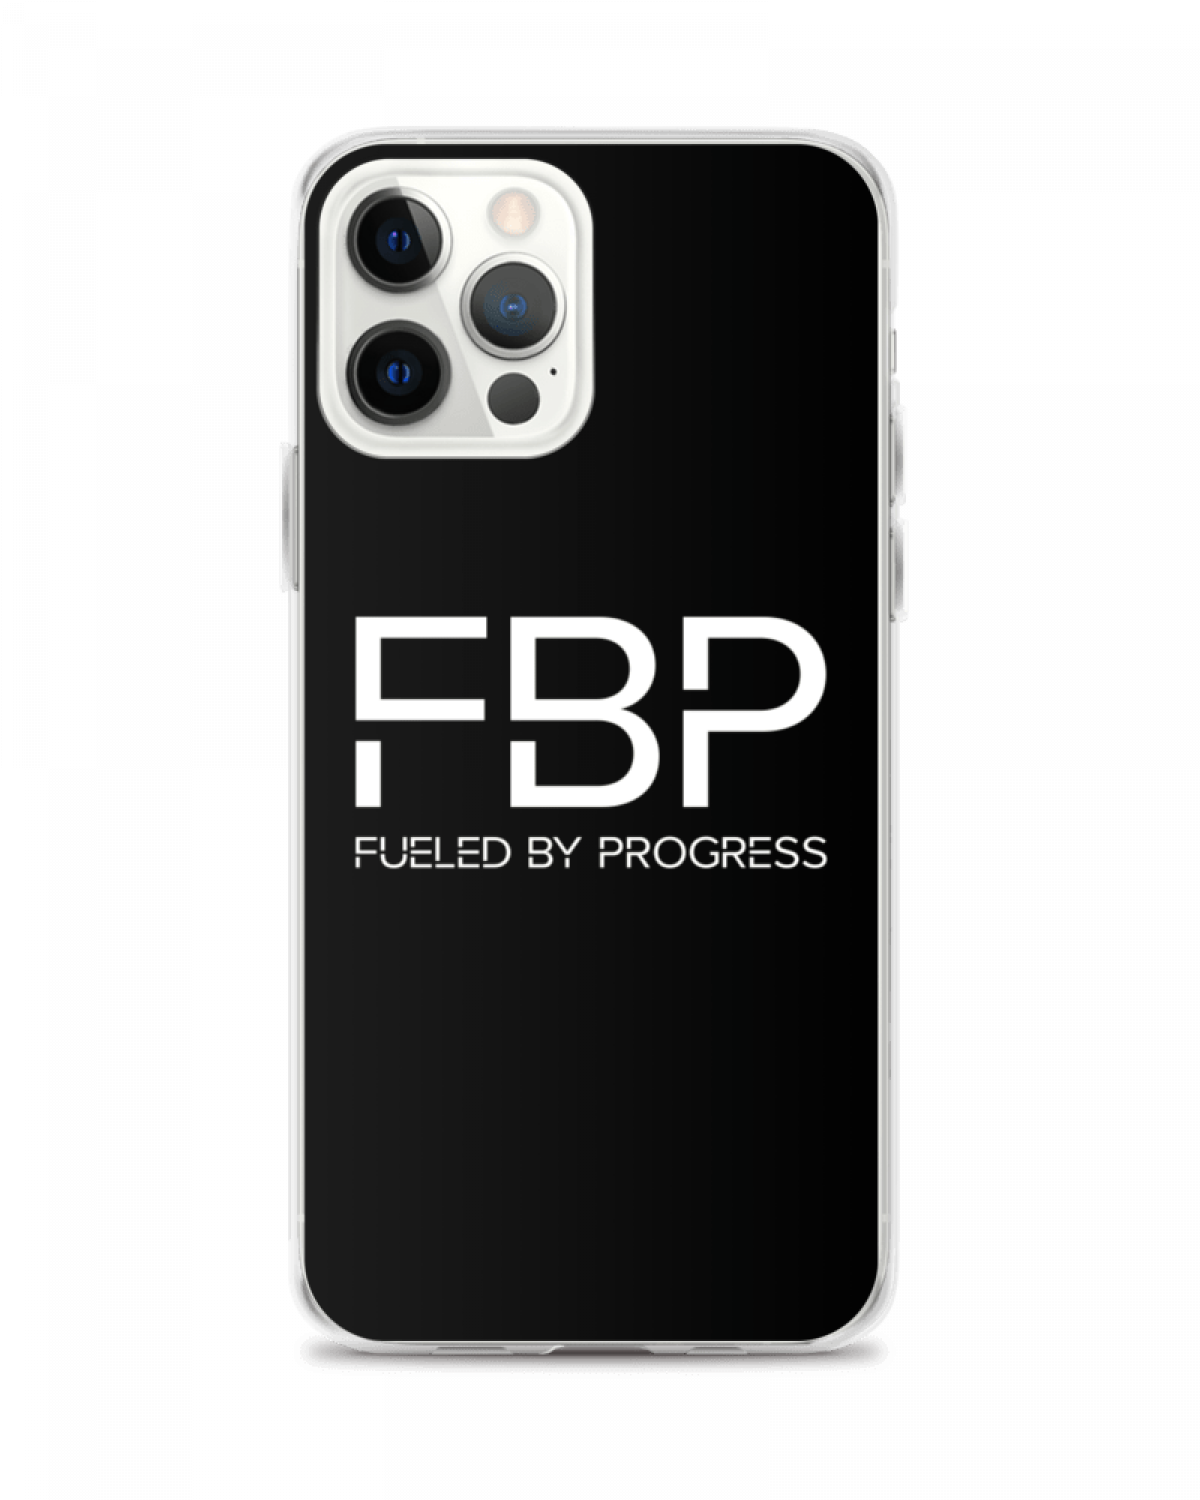 iphone-case-iphone-12-pro-max-case-on-phone-6031dfd4015c9.png